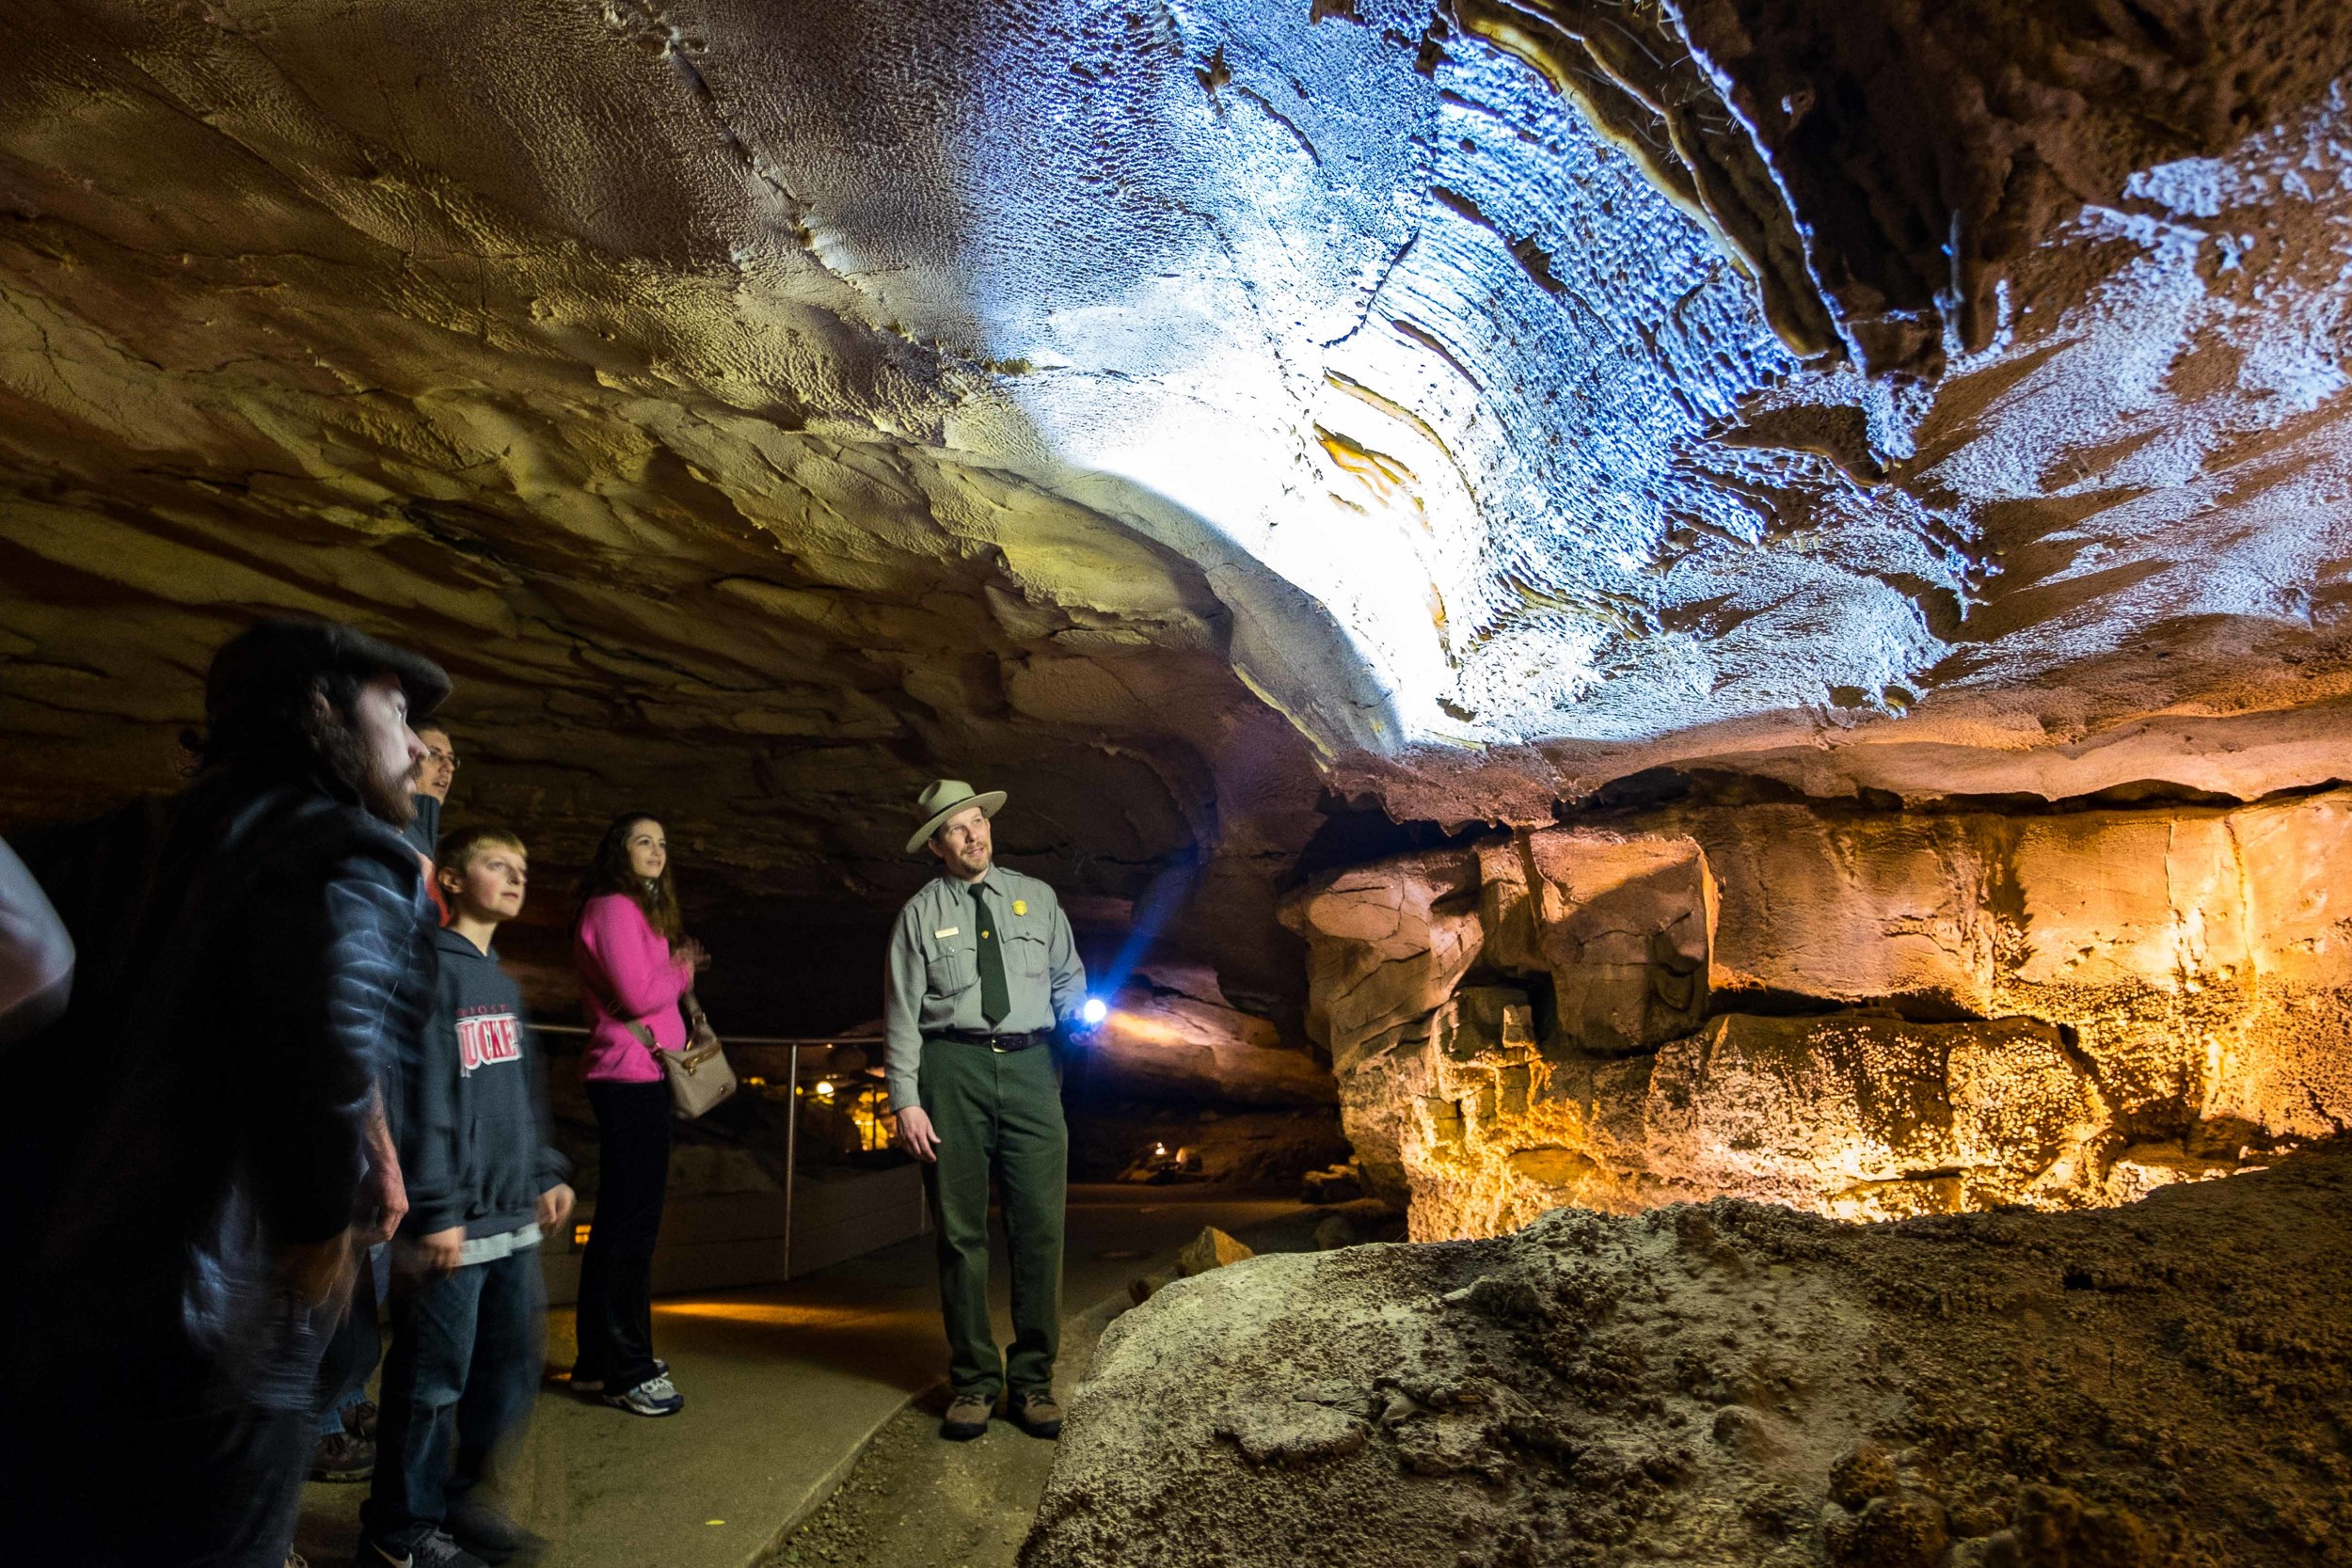 Ranger Jackie shows the group that there are indeed living bugs inside the cave.